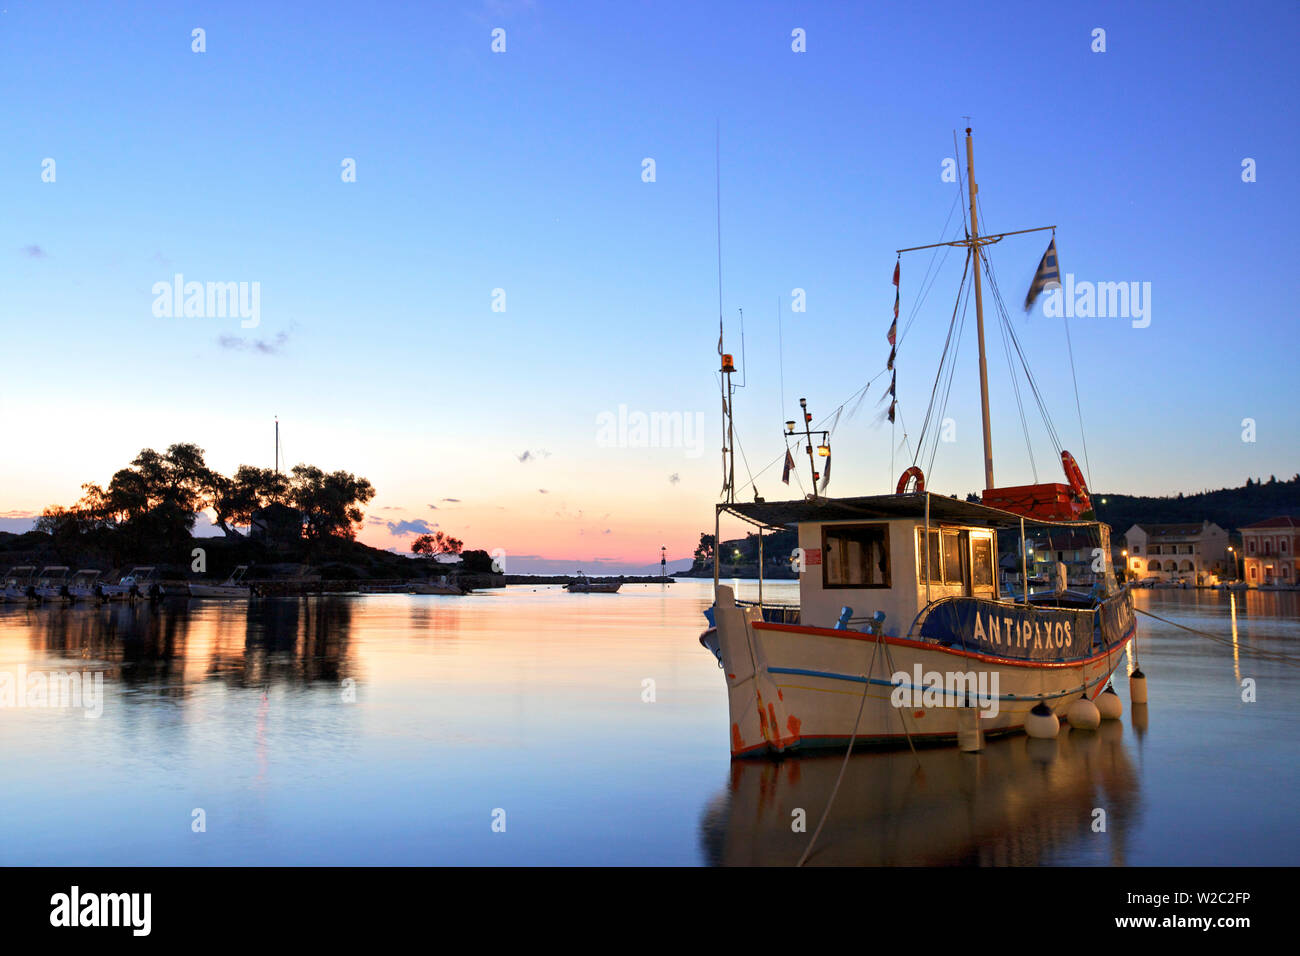 Ferry Boat in Gaios Harbour, Paxos, The Ionian Islands, Greek Islands, Greece, Europe - Stock Image